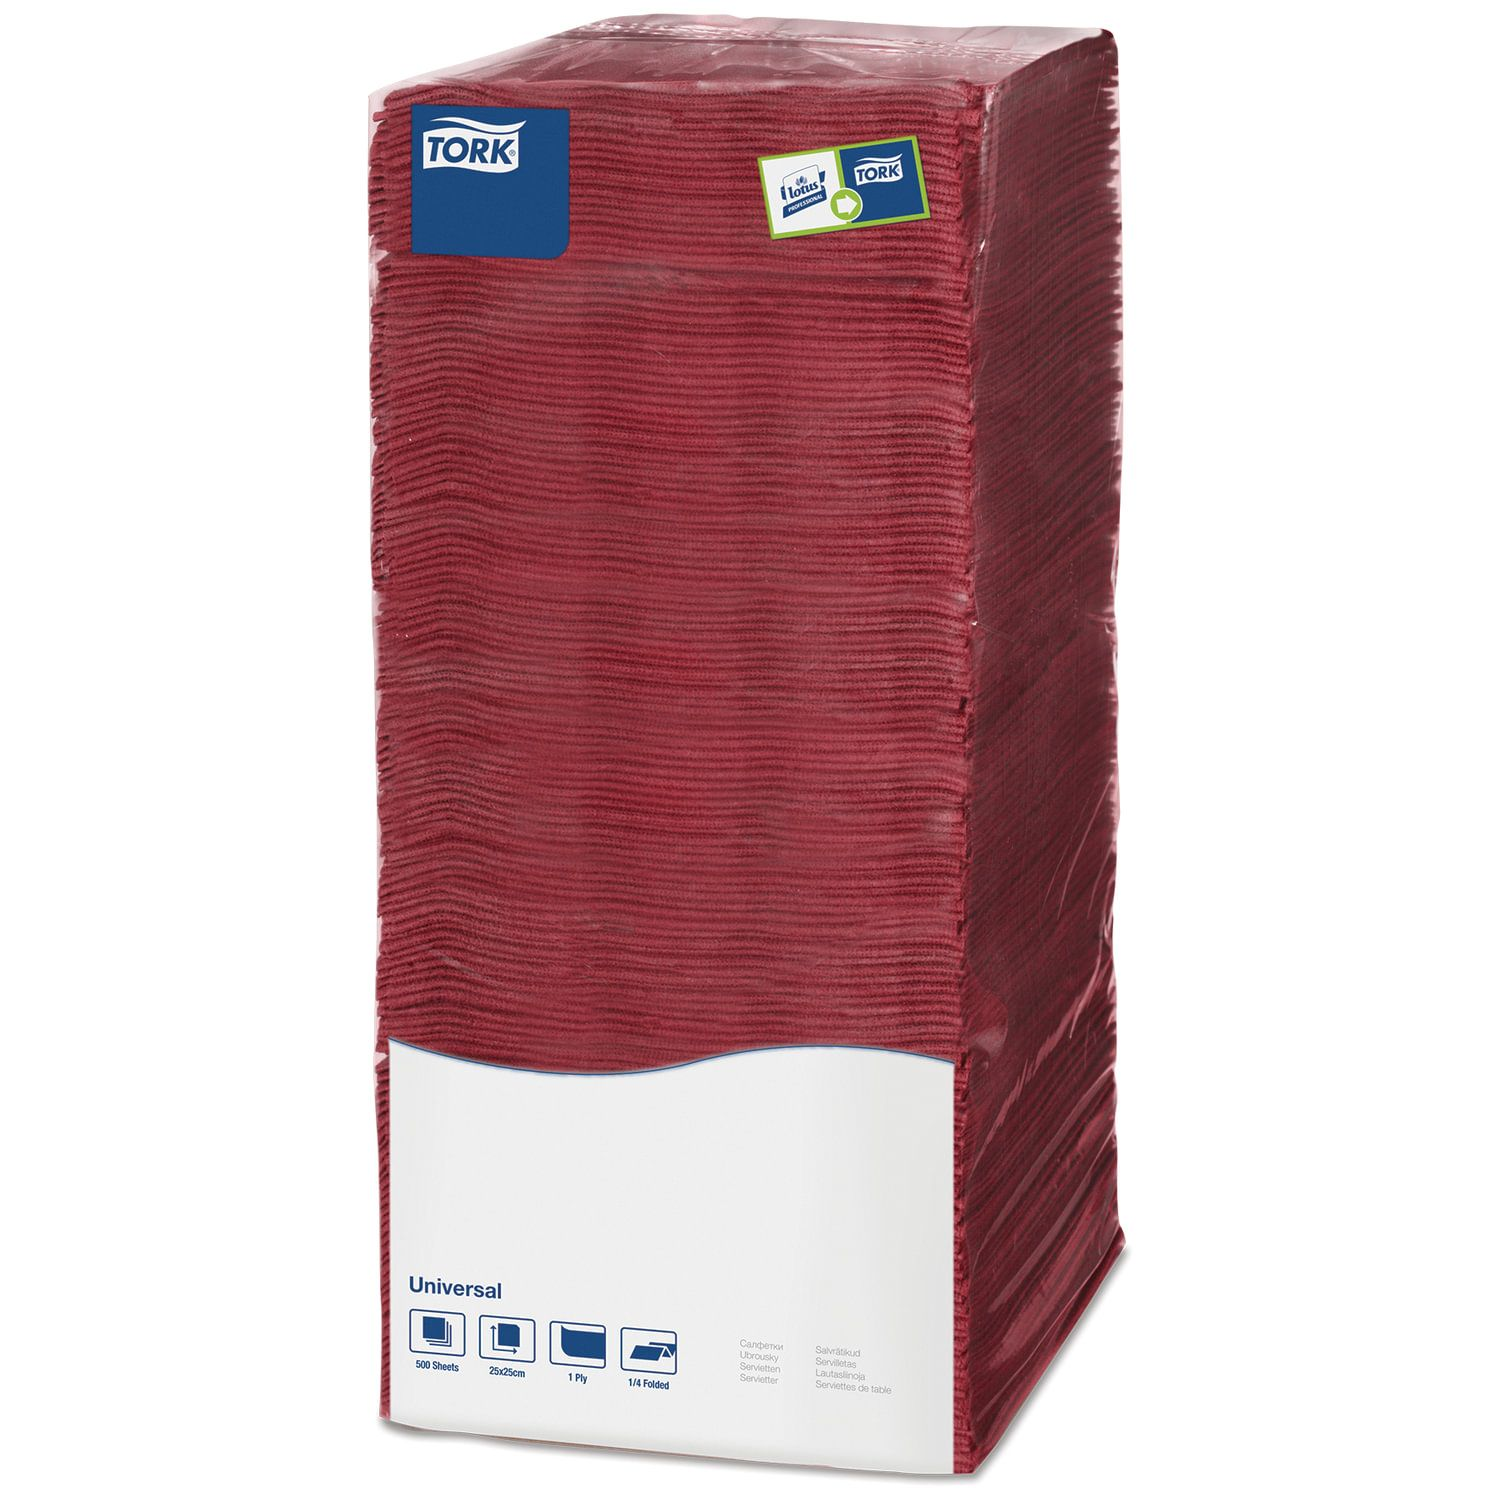 TORK / Napkins Big Pack burgundy, 25x25, 500 pcs.